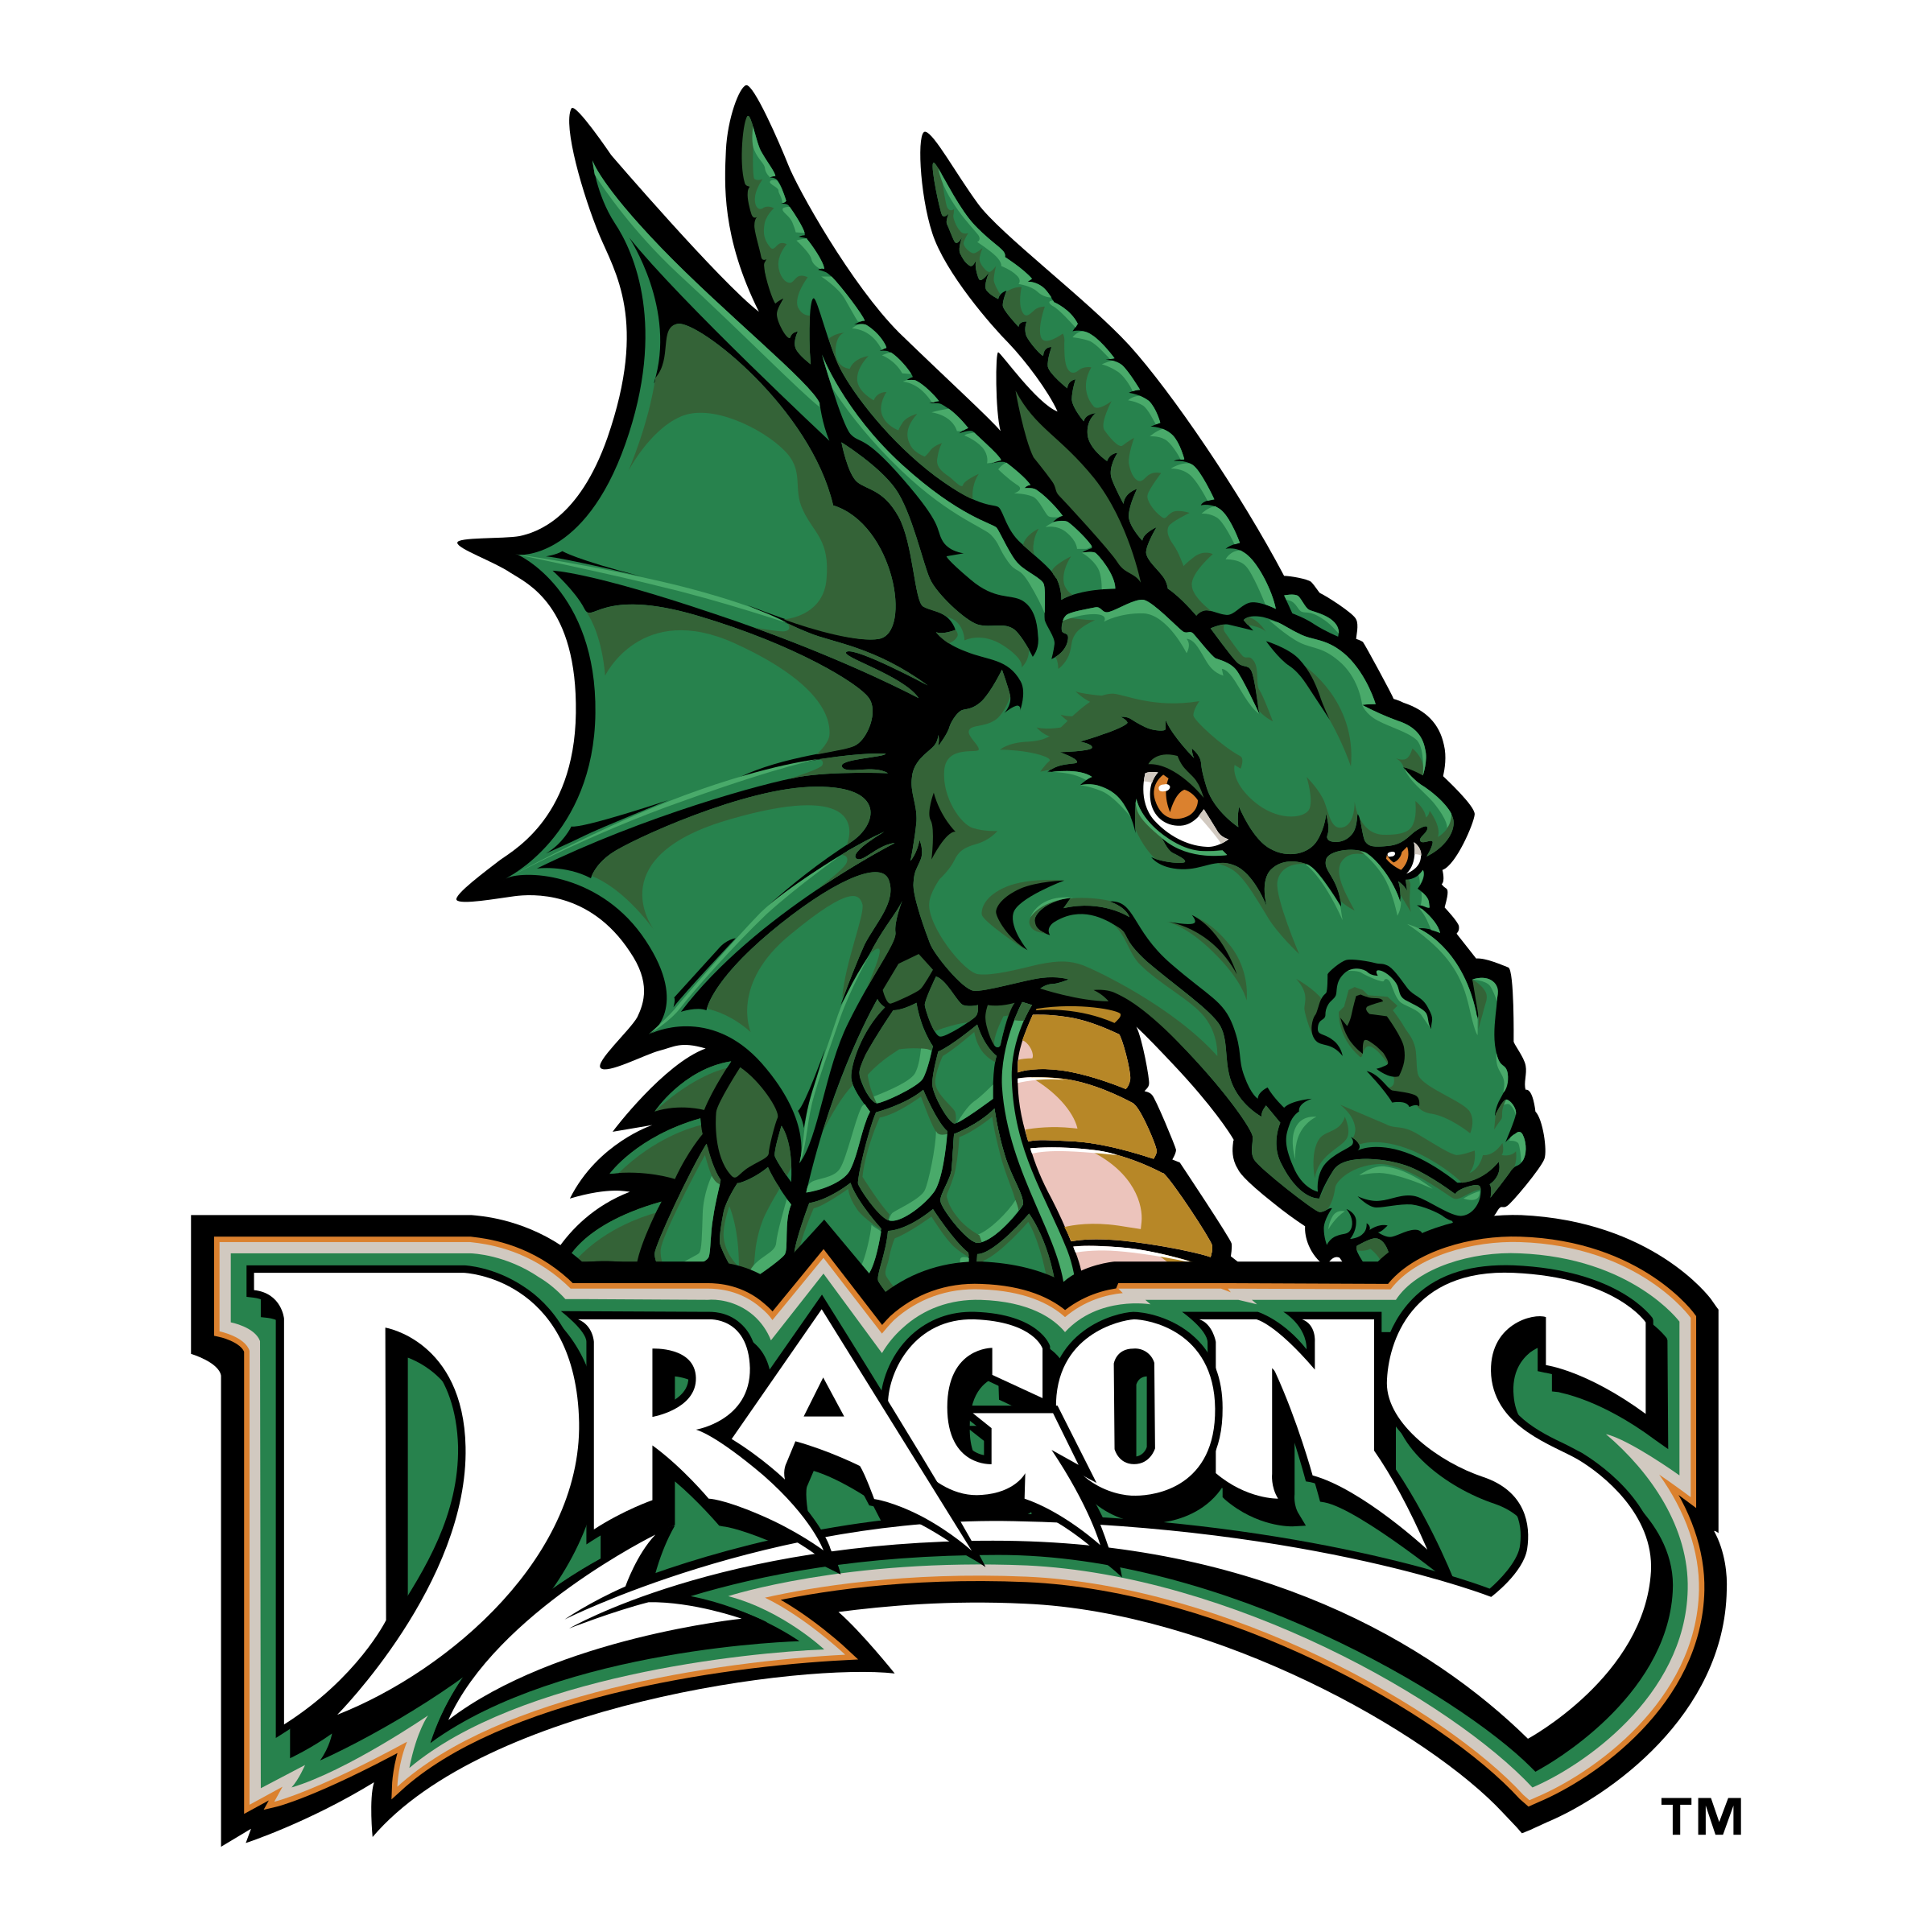 dayton dragons logo png transparent amp svg vector freebie